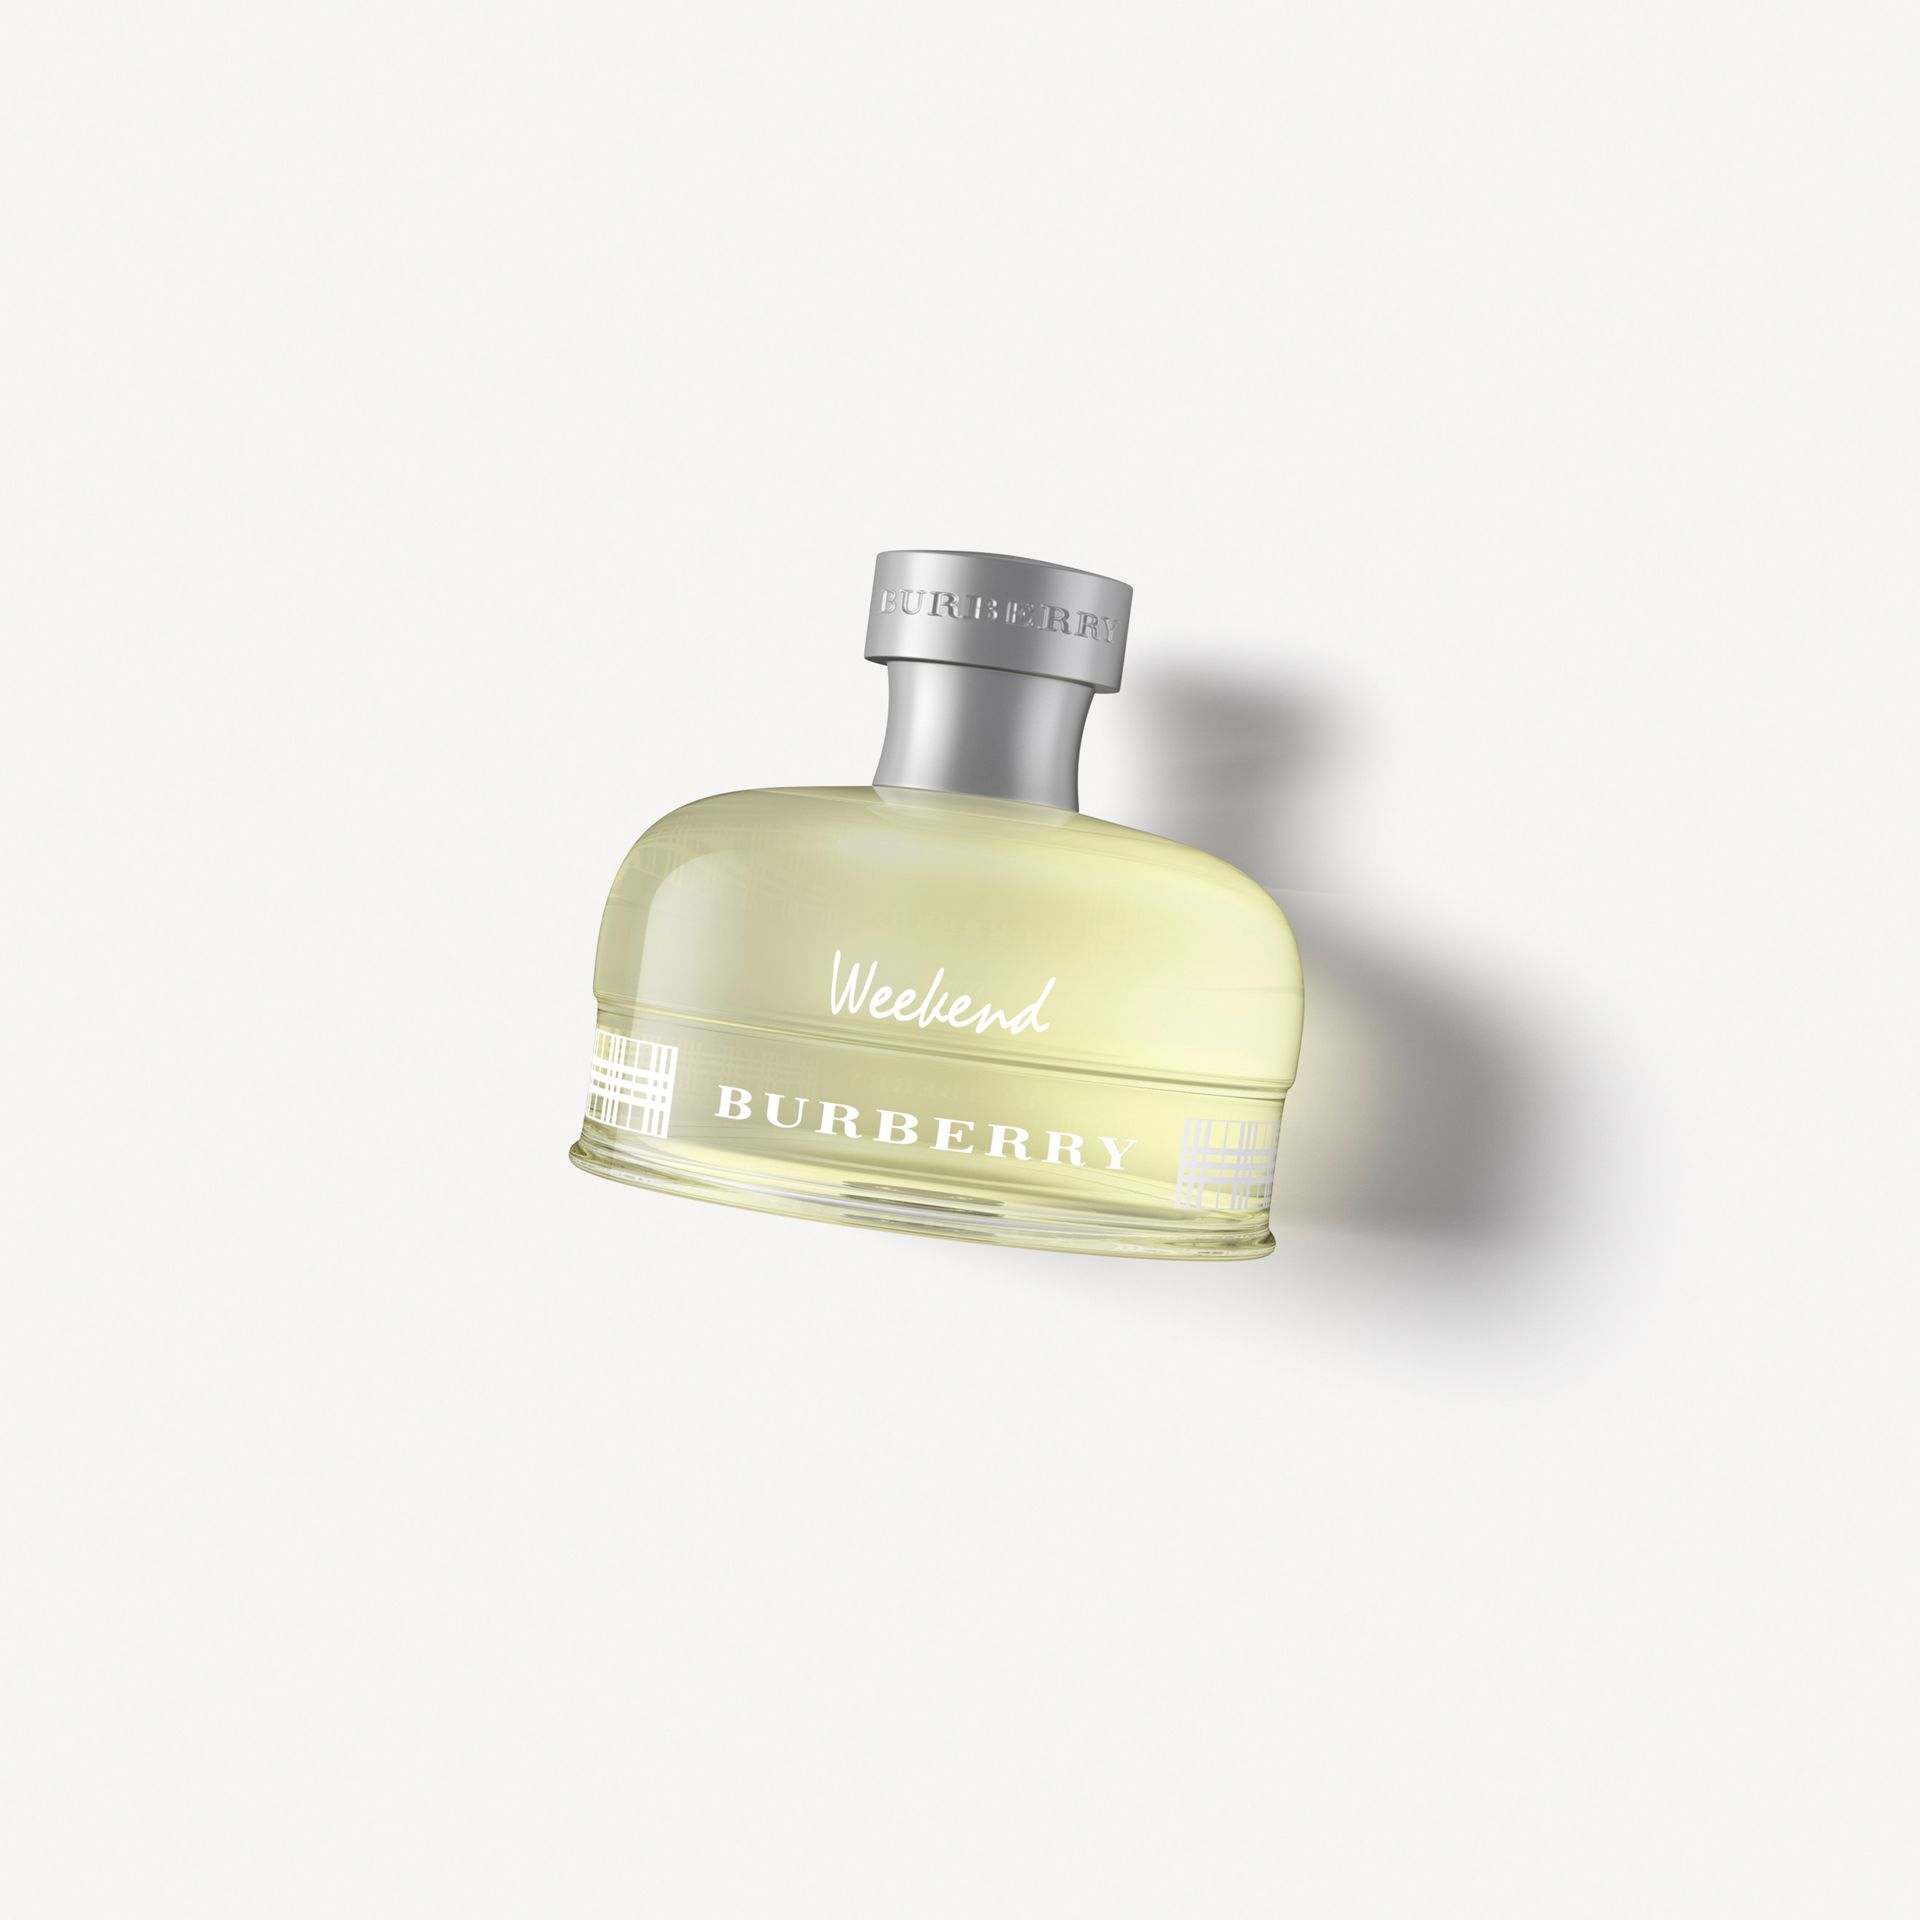 Burberry Weekend 香水 100ml - 女款 | Burberry - 圖庫照片 0